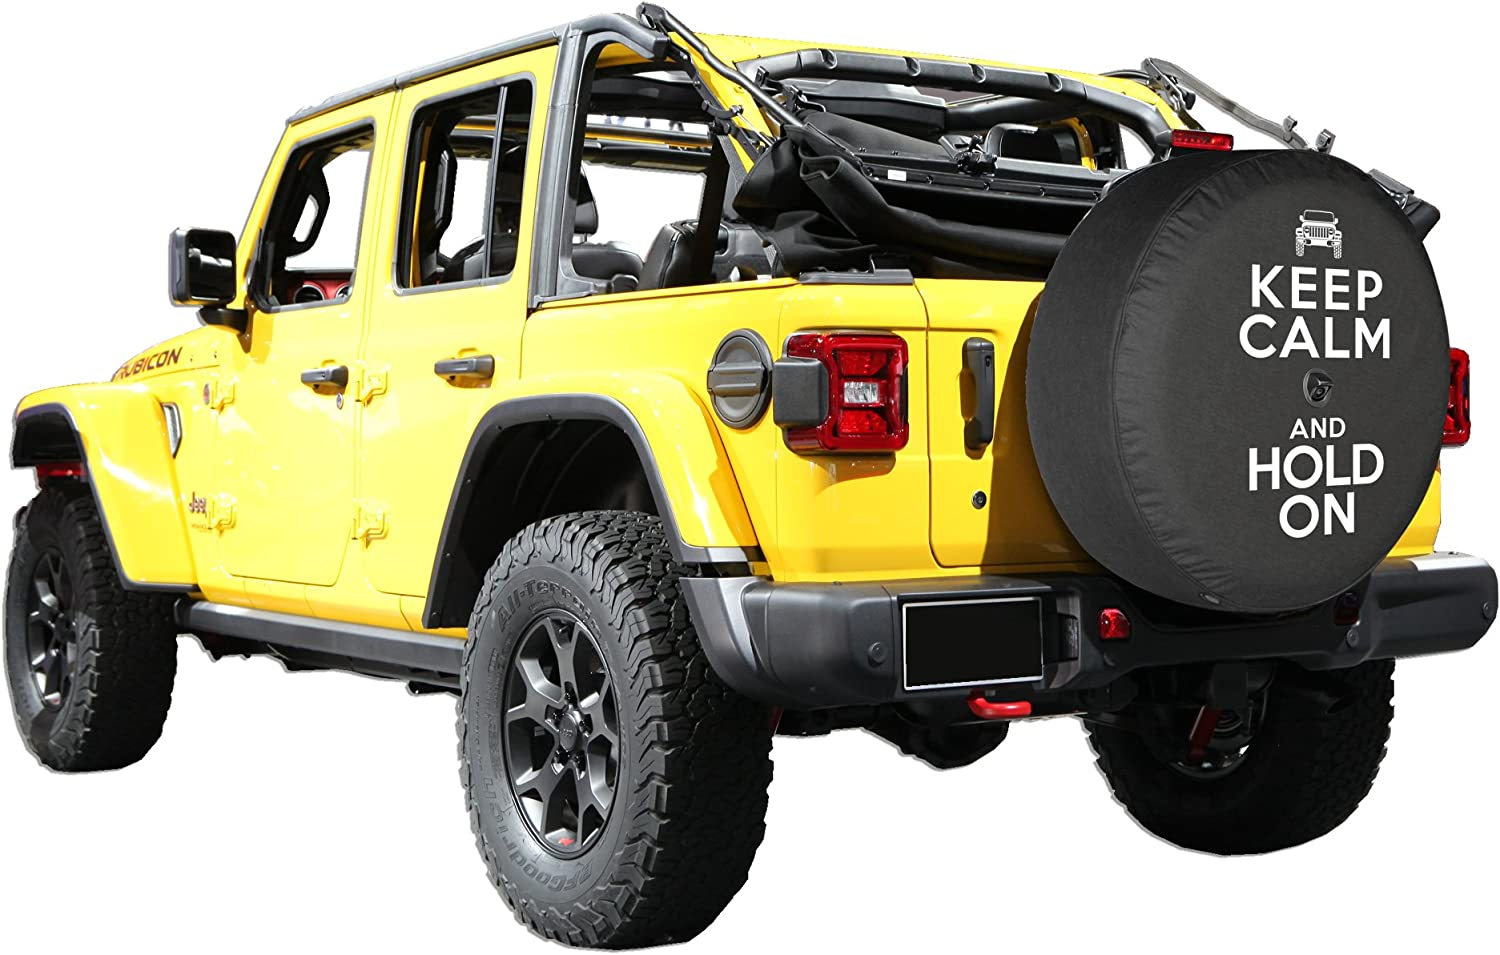 Boomerang - Keep Calm Hold On - Sport /& Sahara with Back-up Camera 2018-2020 32 Soft JL Tire Cover for Jeep Wrangler JL